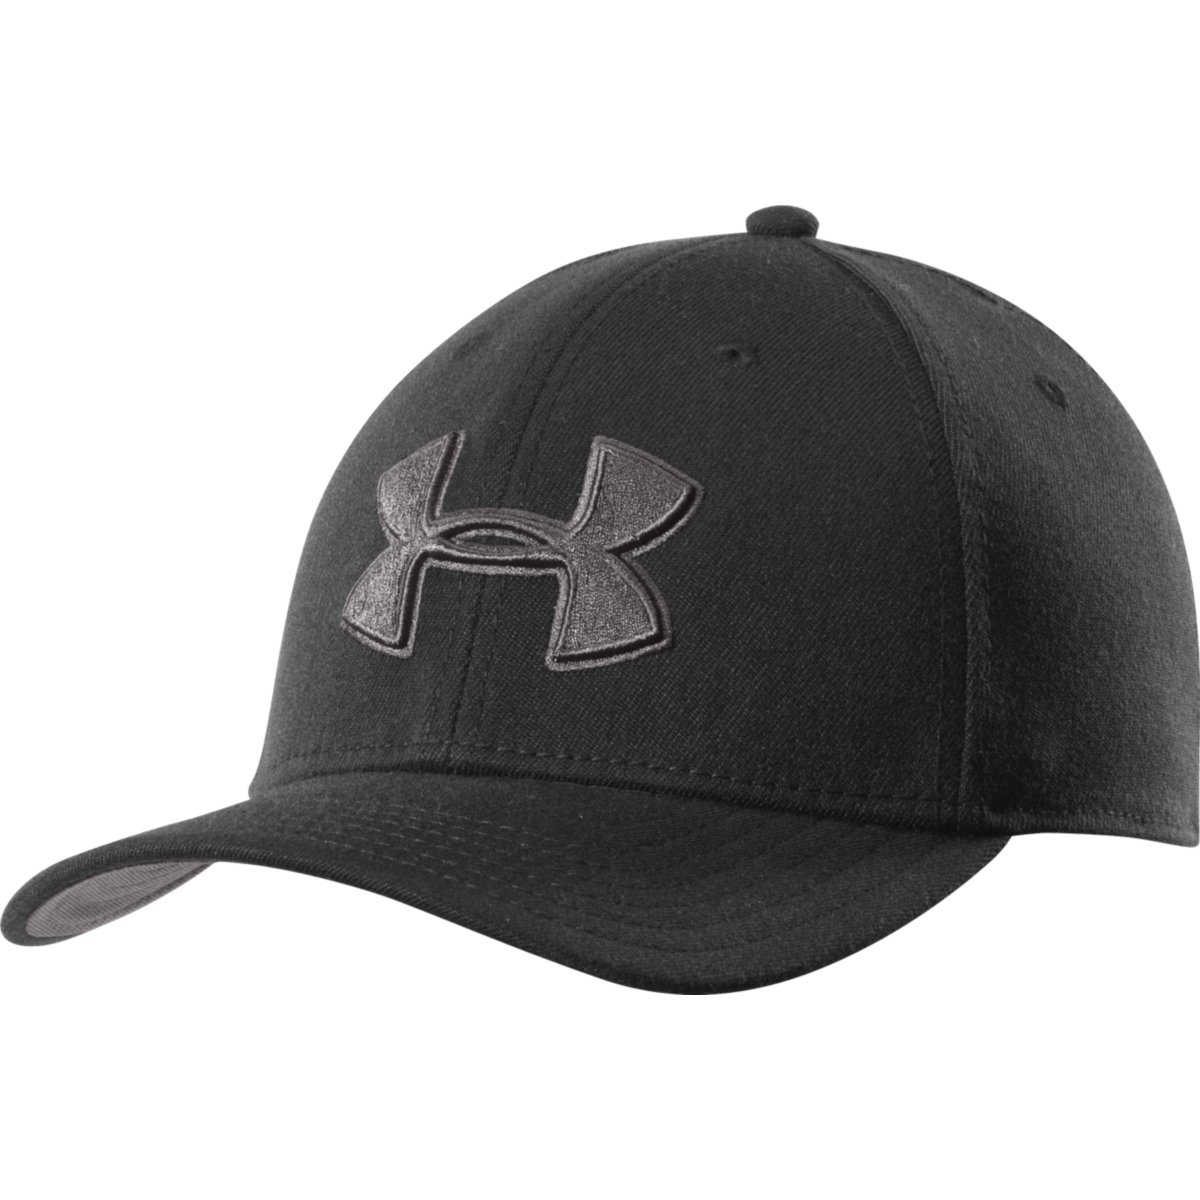 Under Armour Men's Closer Low Crown Stretch Fit Cap - Black, L/XL